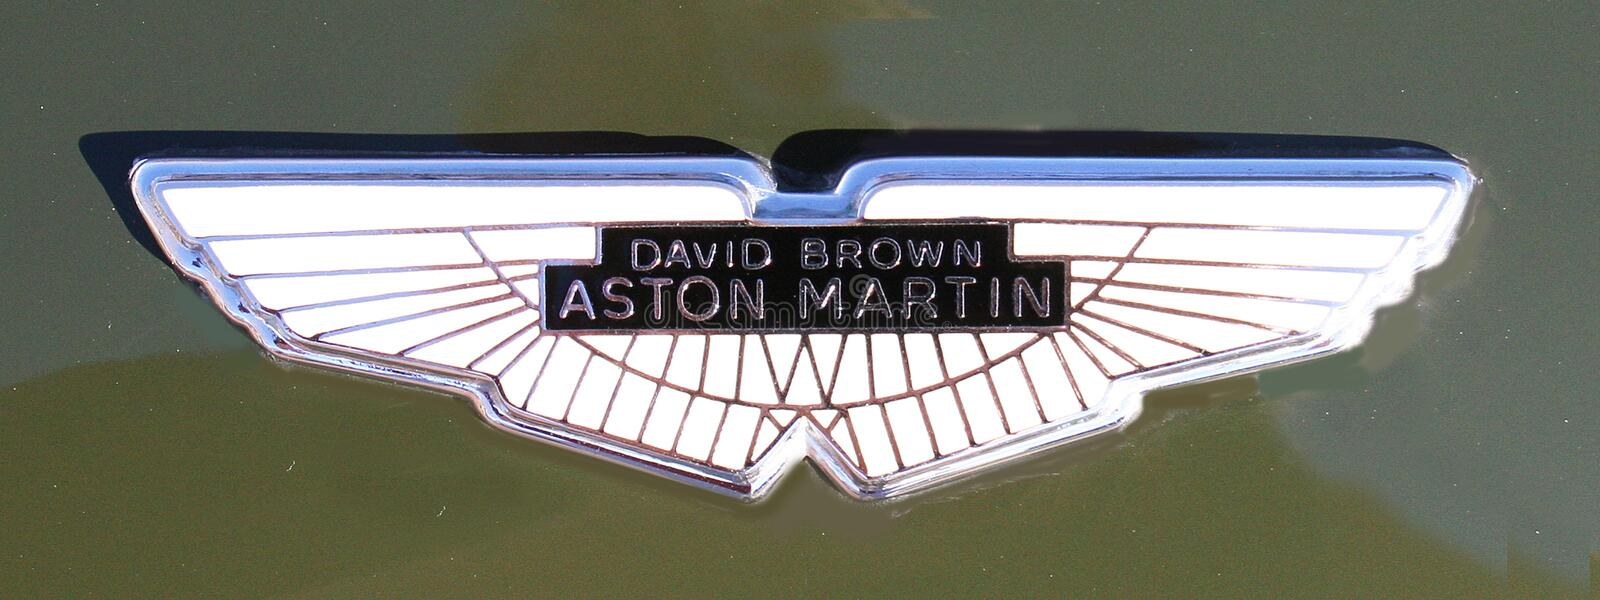 Aston Martin Hood Badge royalty free stock photos